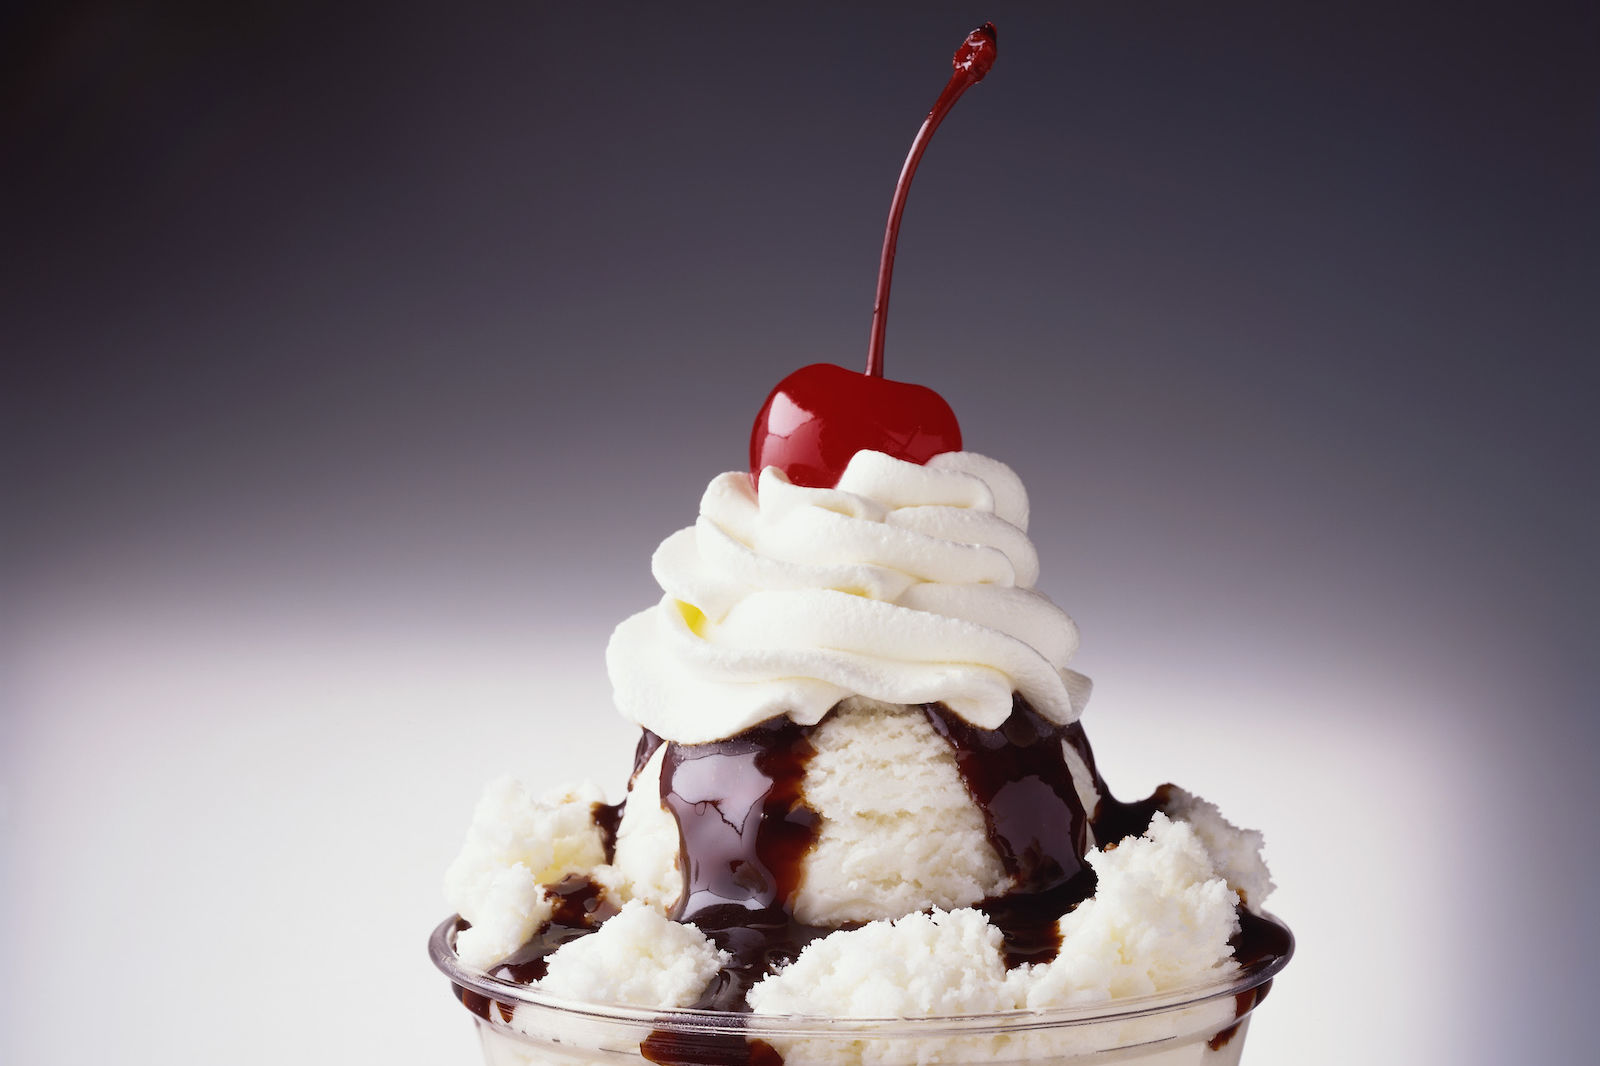 Behold the World's Longest Ice Cream Sundae